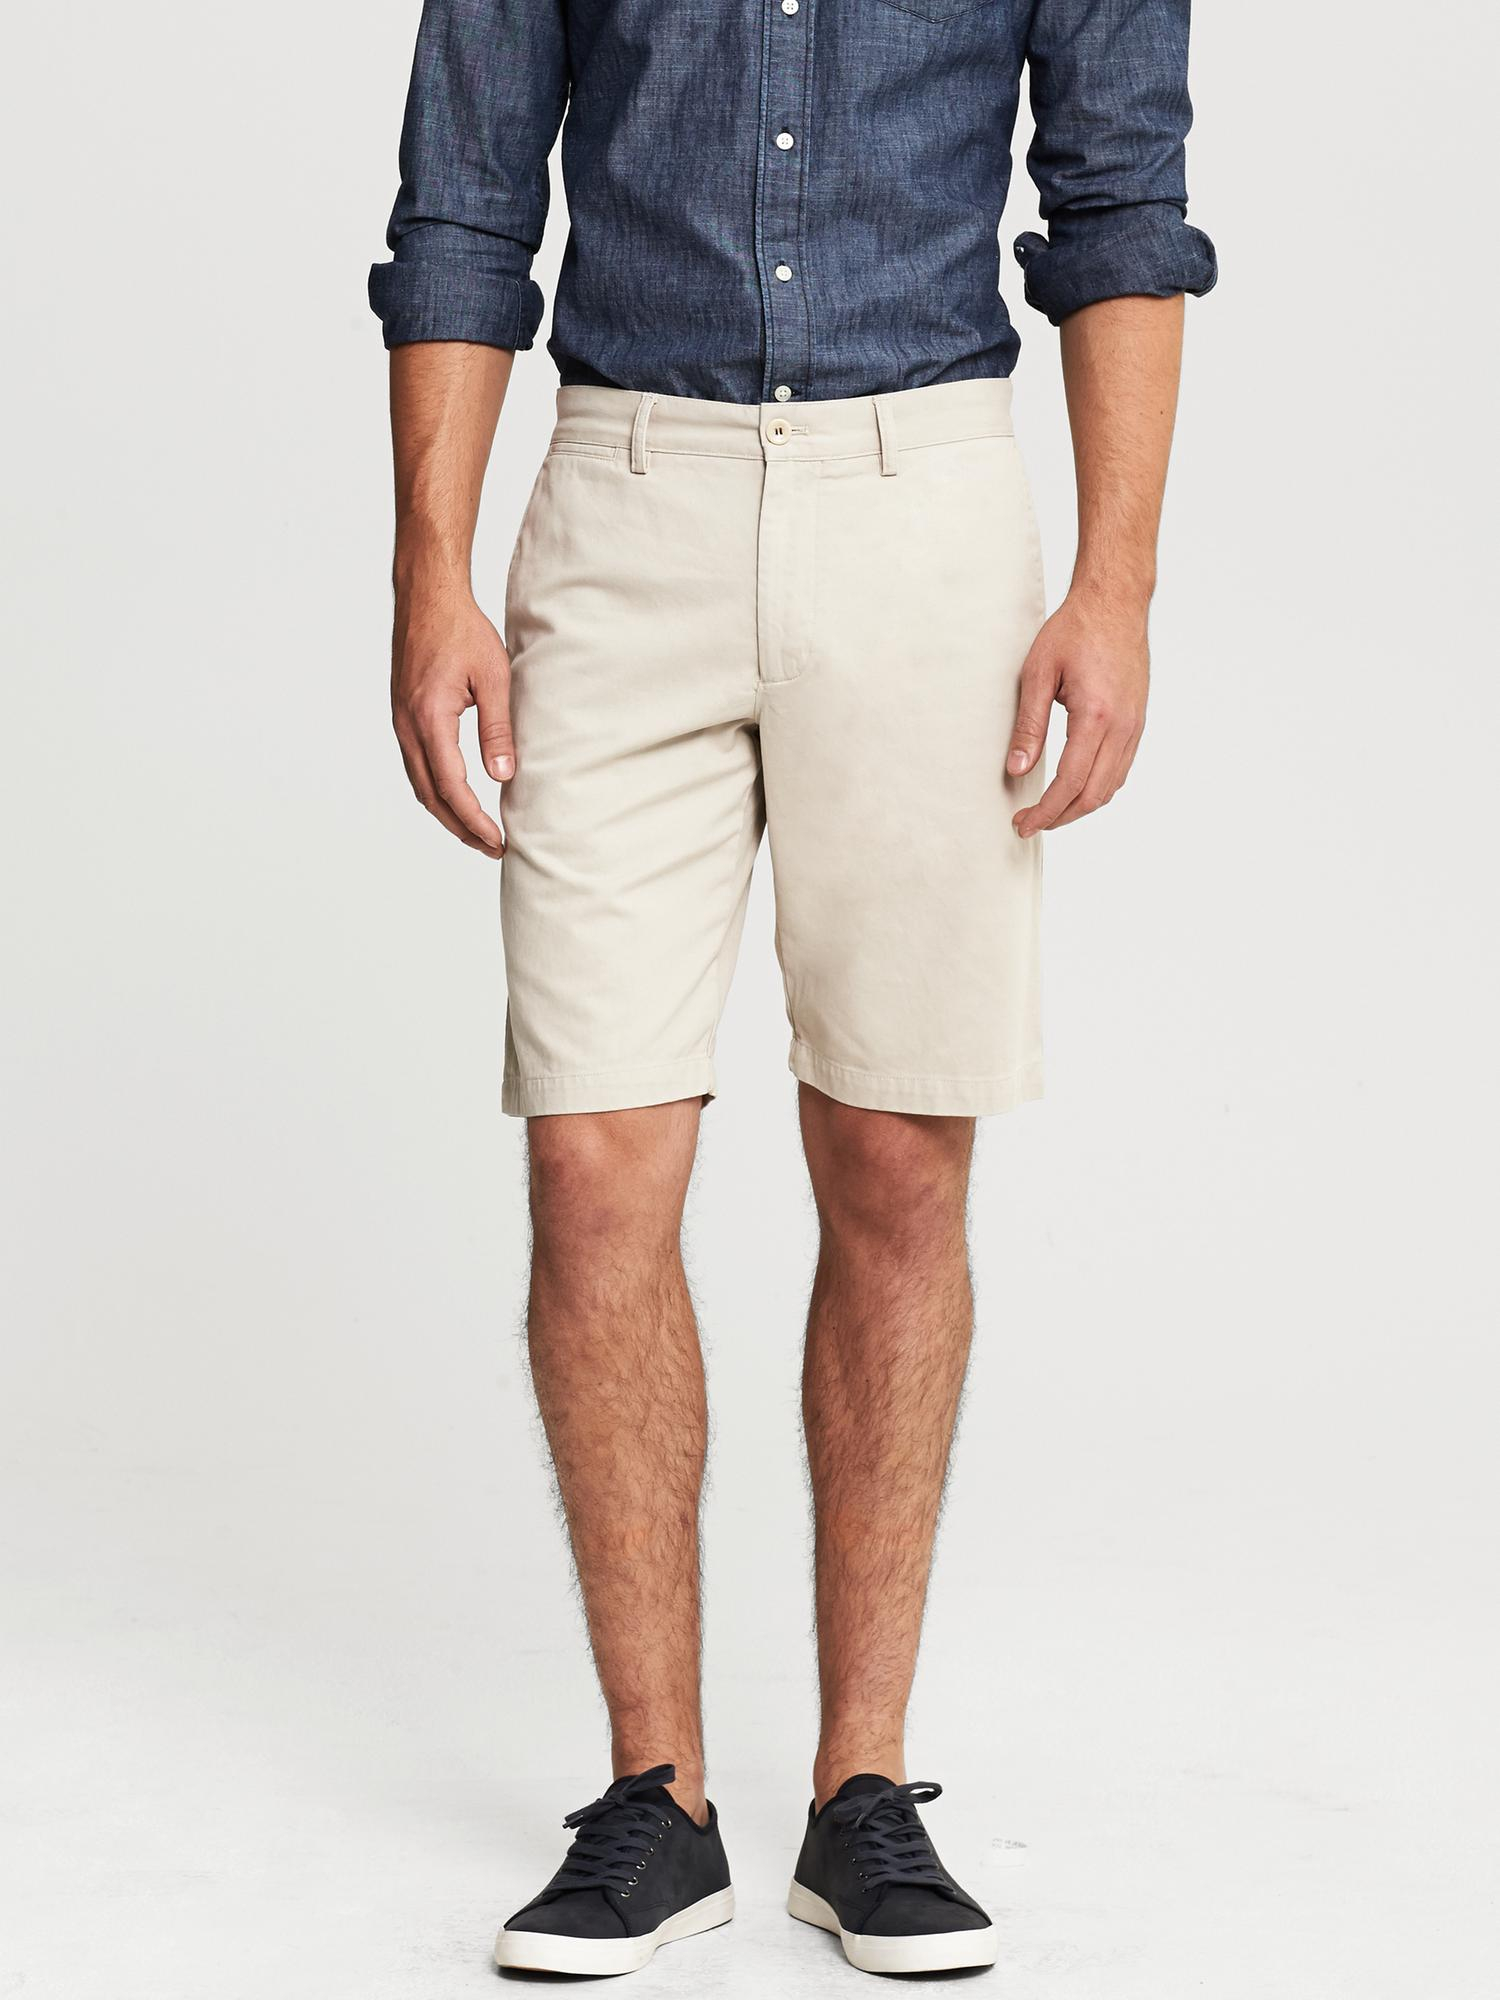 Shop Banana Republic Women's Shorts at up to 70% off! Get the lowest price on your favorite brands at Poshmark. Poshmark makes shopping fun, affordable & easy!